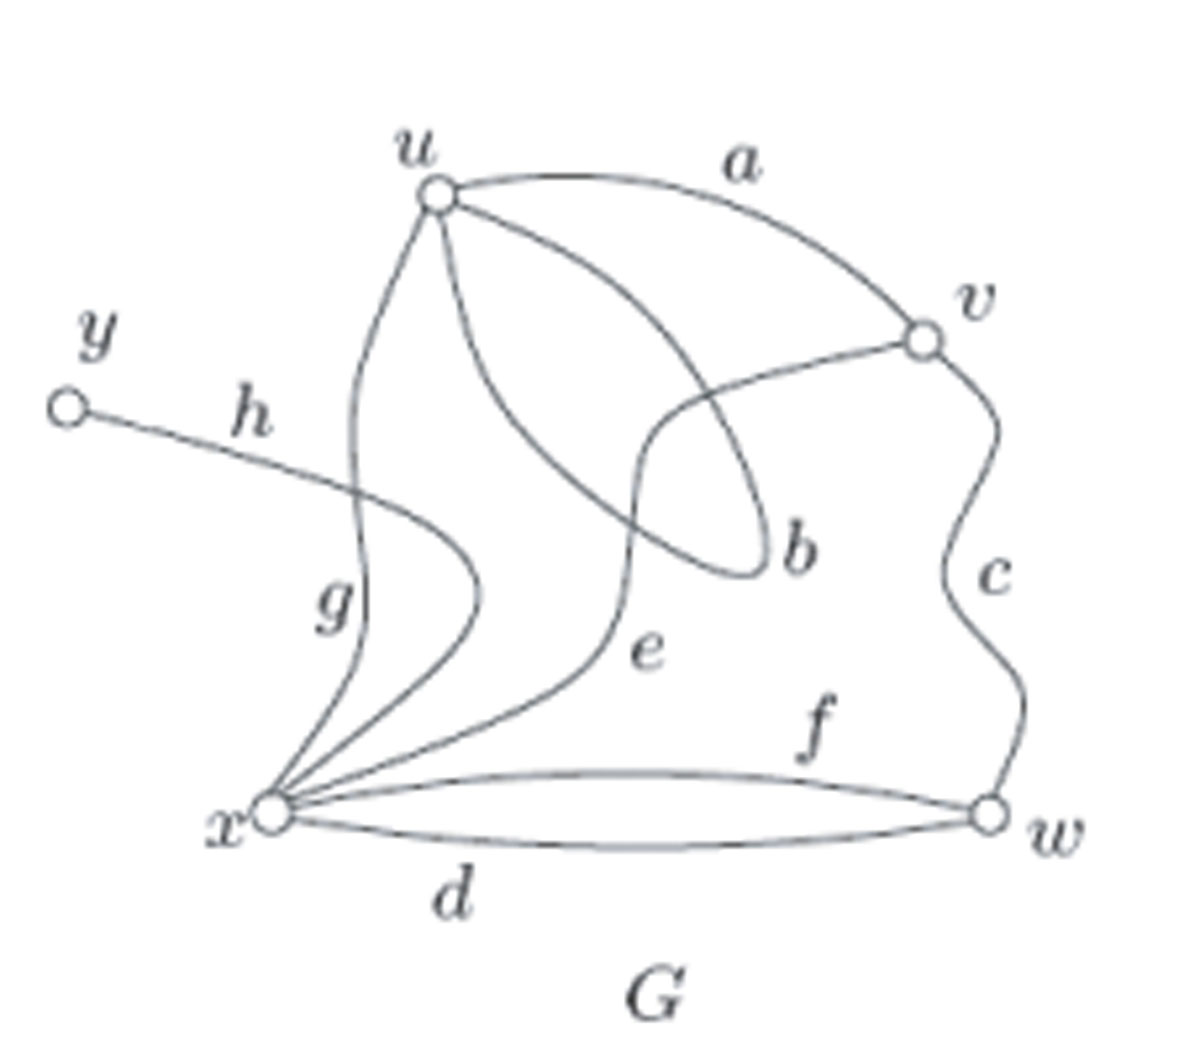 https://static-content.springer.com/image/art%3A10.1186%2F1477-5956-9-S1-S17/MediaObjects/12953_2011_Article_298_Fig1_HTML.jpg